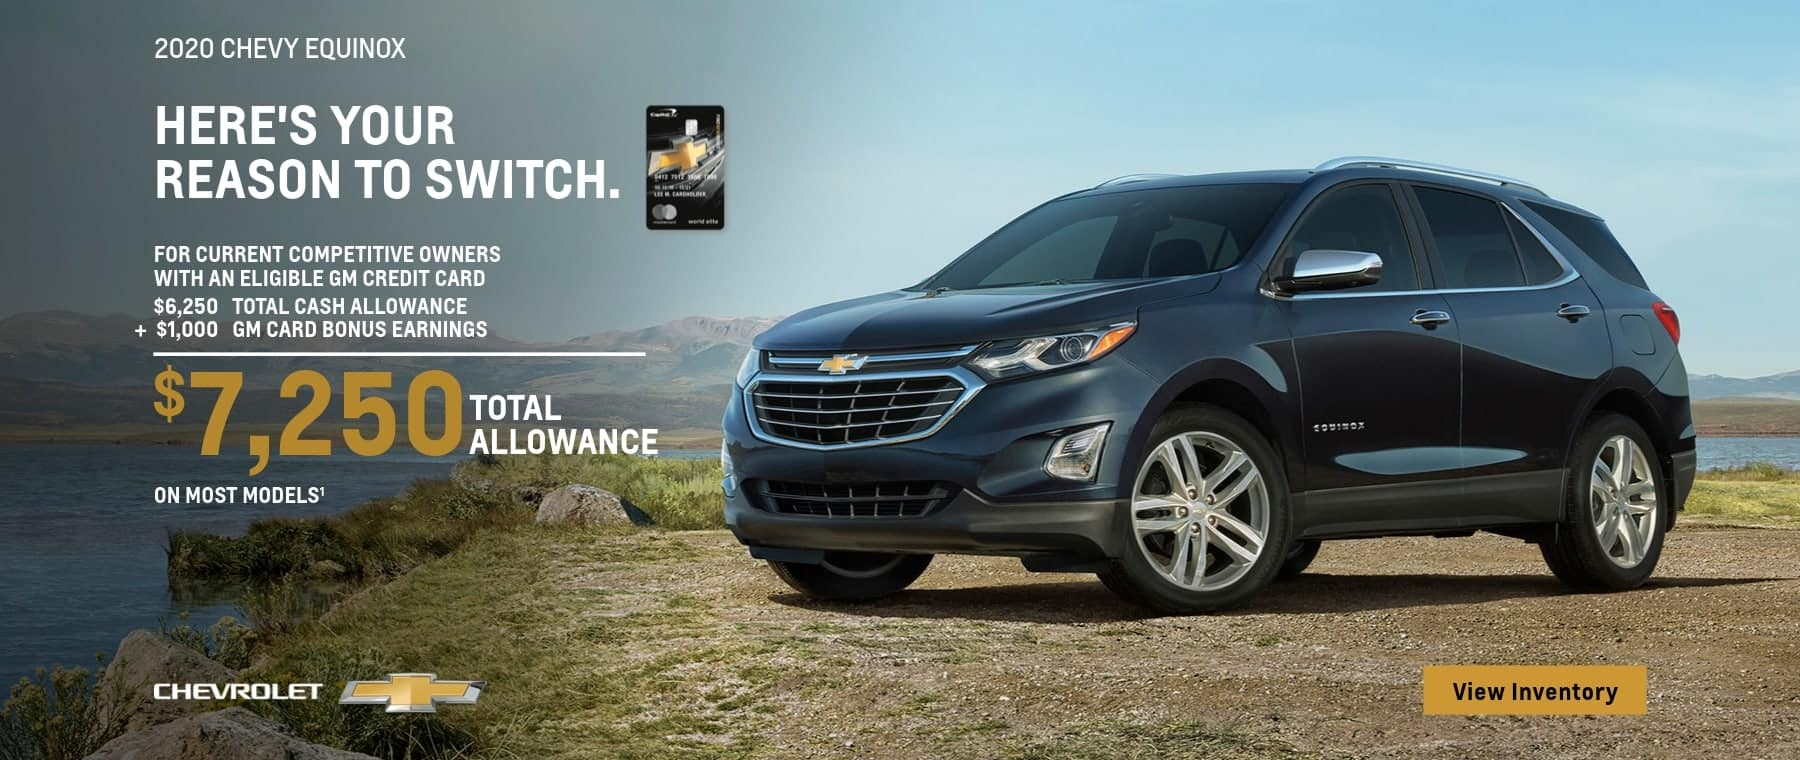 2020 Chevy Equinox For Current Competitive Owners with an eligible GM credit card. $6,250 Total Cash Allowance plus $1,000 GM Card bonus earnings. $7,250 Total Cash Allowance on most models.